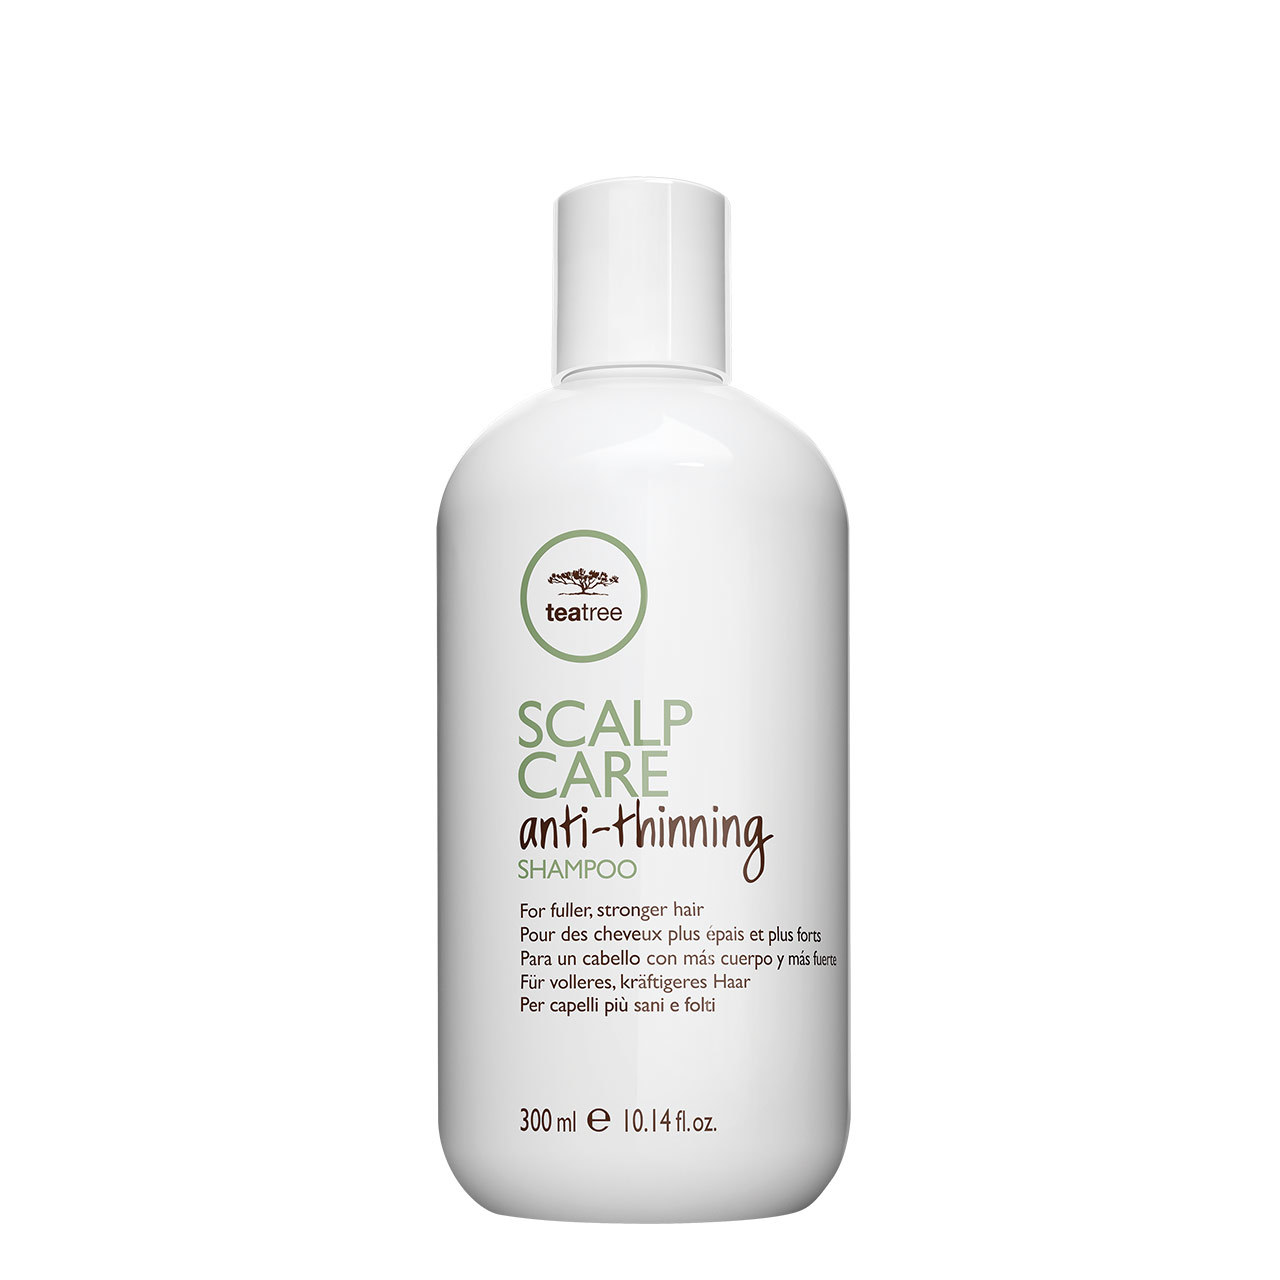 Scalp Care Anti-thinning Shampoo obsah (ml): 100ml